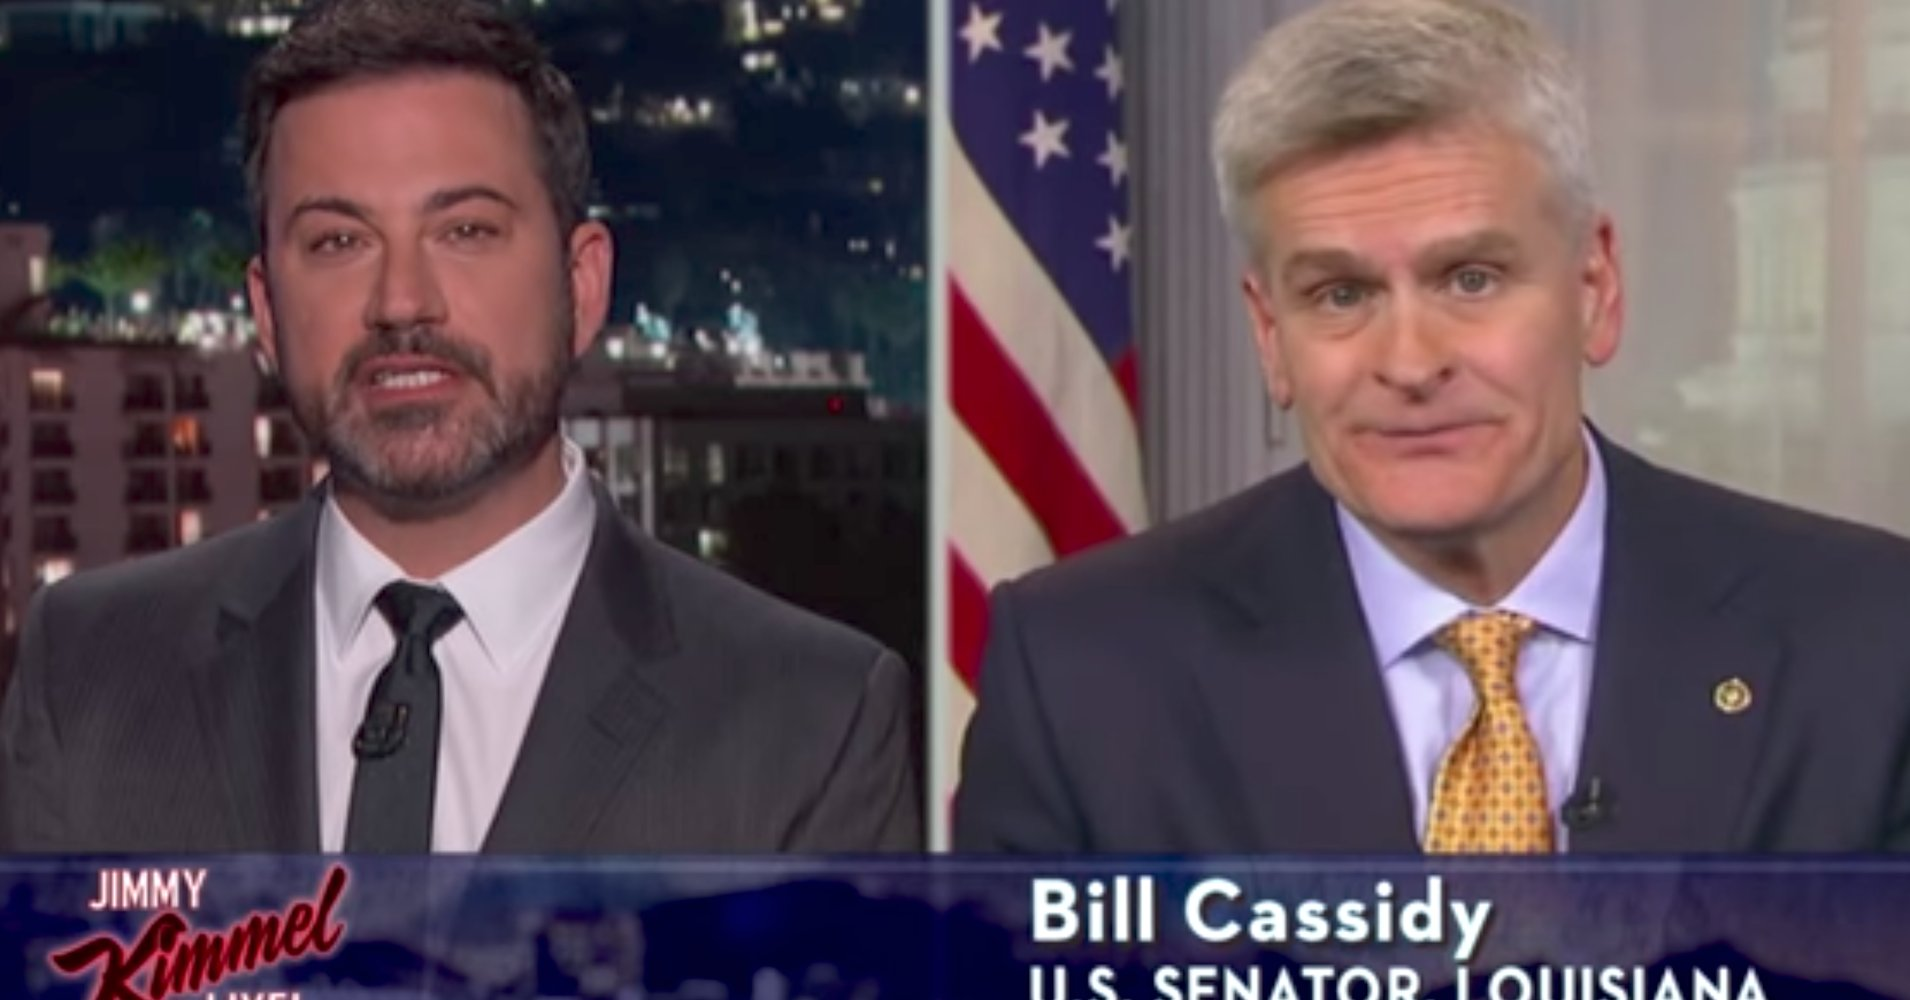 Jimmy Kimmel says Sen. Bill Cassidy lied to his face over Obamacare repeal https://t.co/syQV2dW8NT https://t.co/vTt1URMRR8